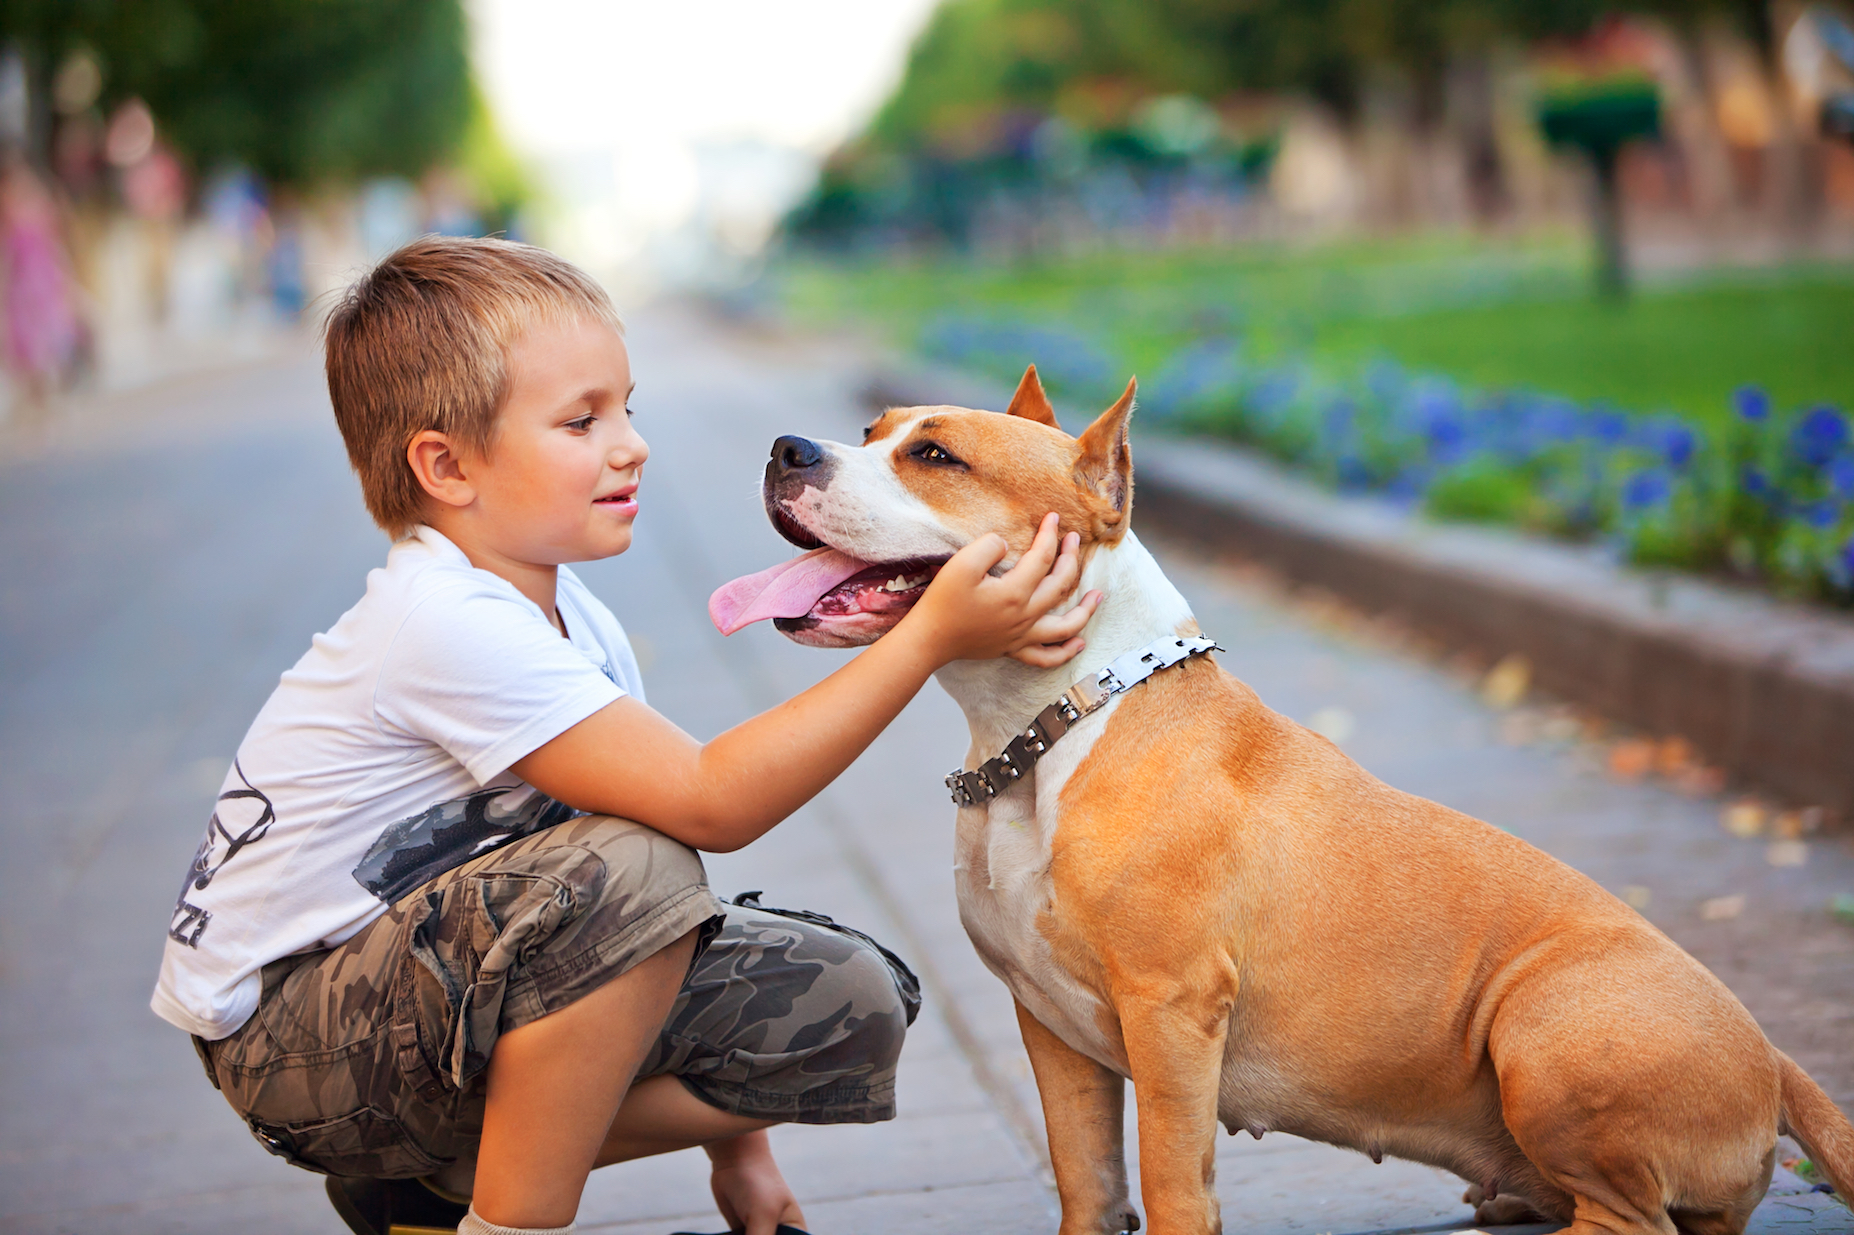 According to a new study, if you have a dog around your very young children, it could increase their levels of good bacteria.